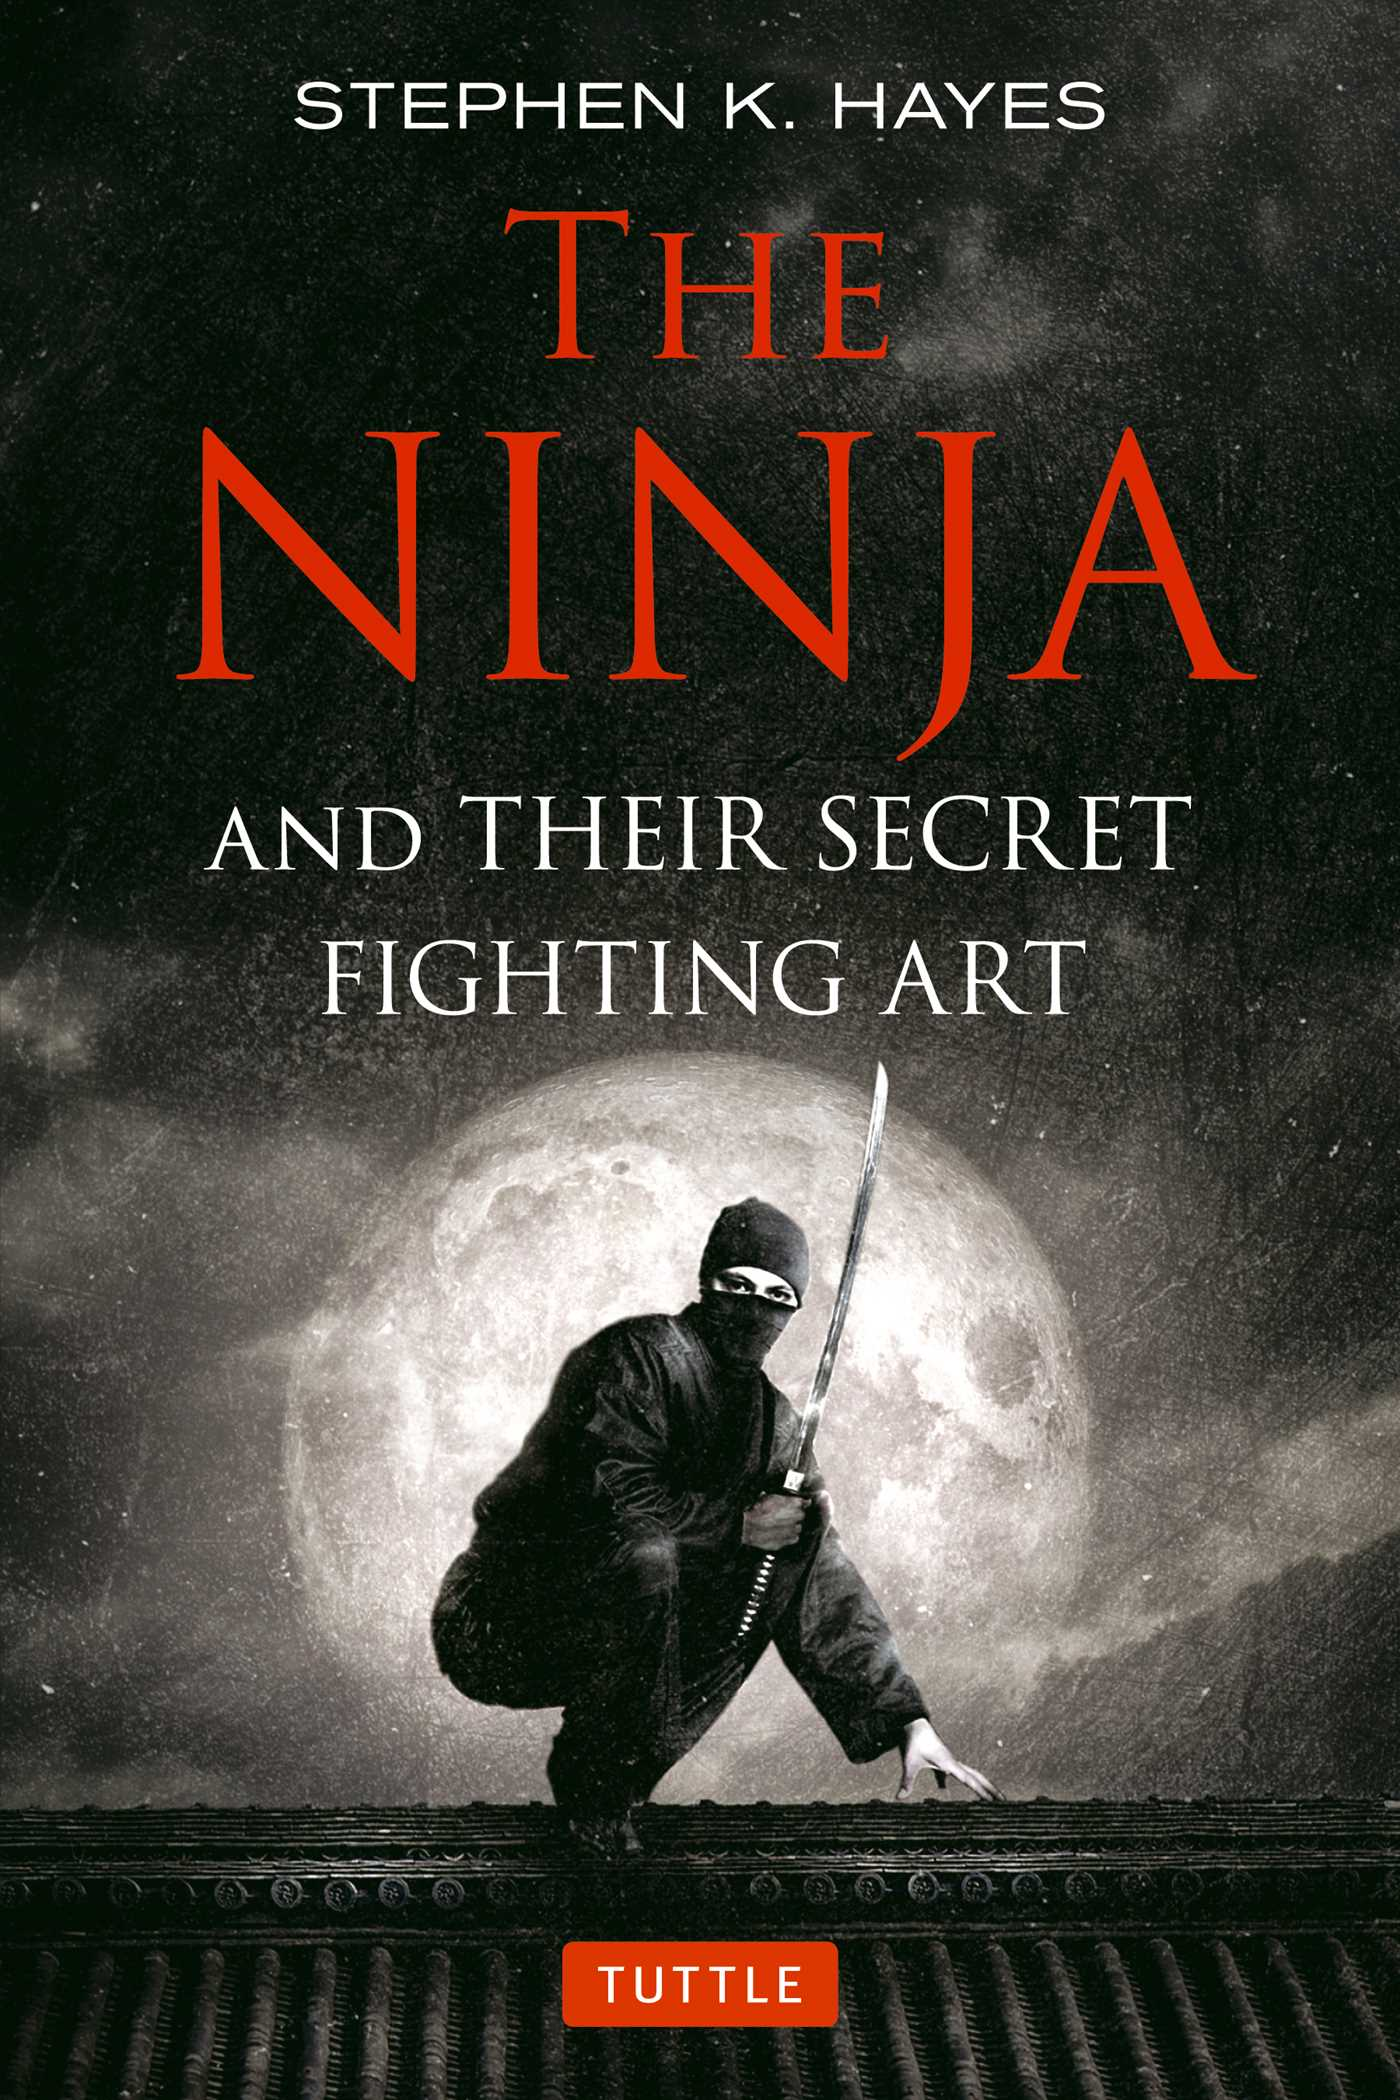 The ninja and their secret fighting art 9784805314302 hr